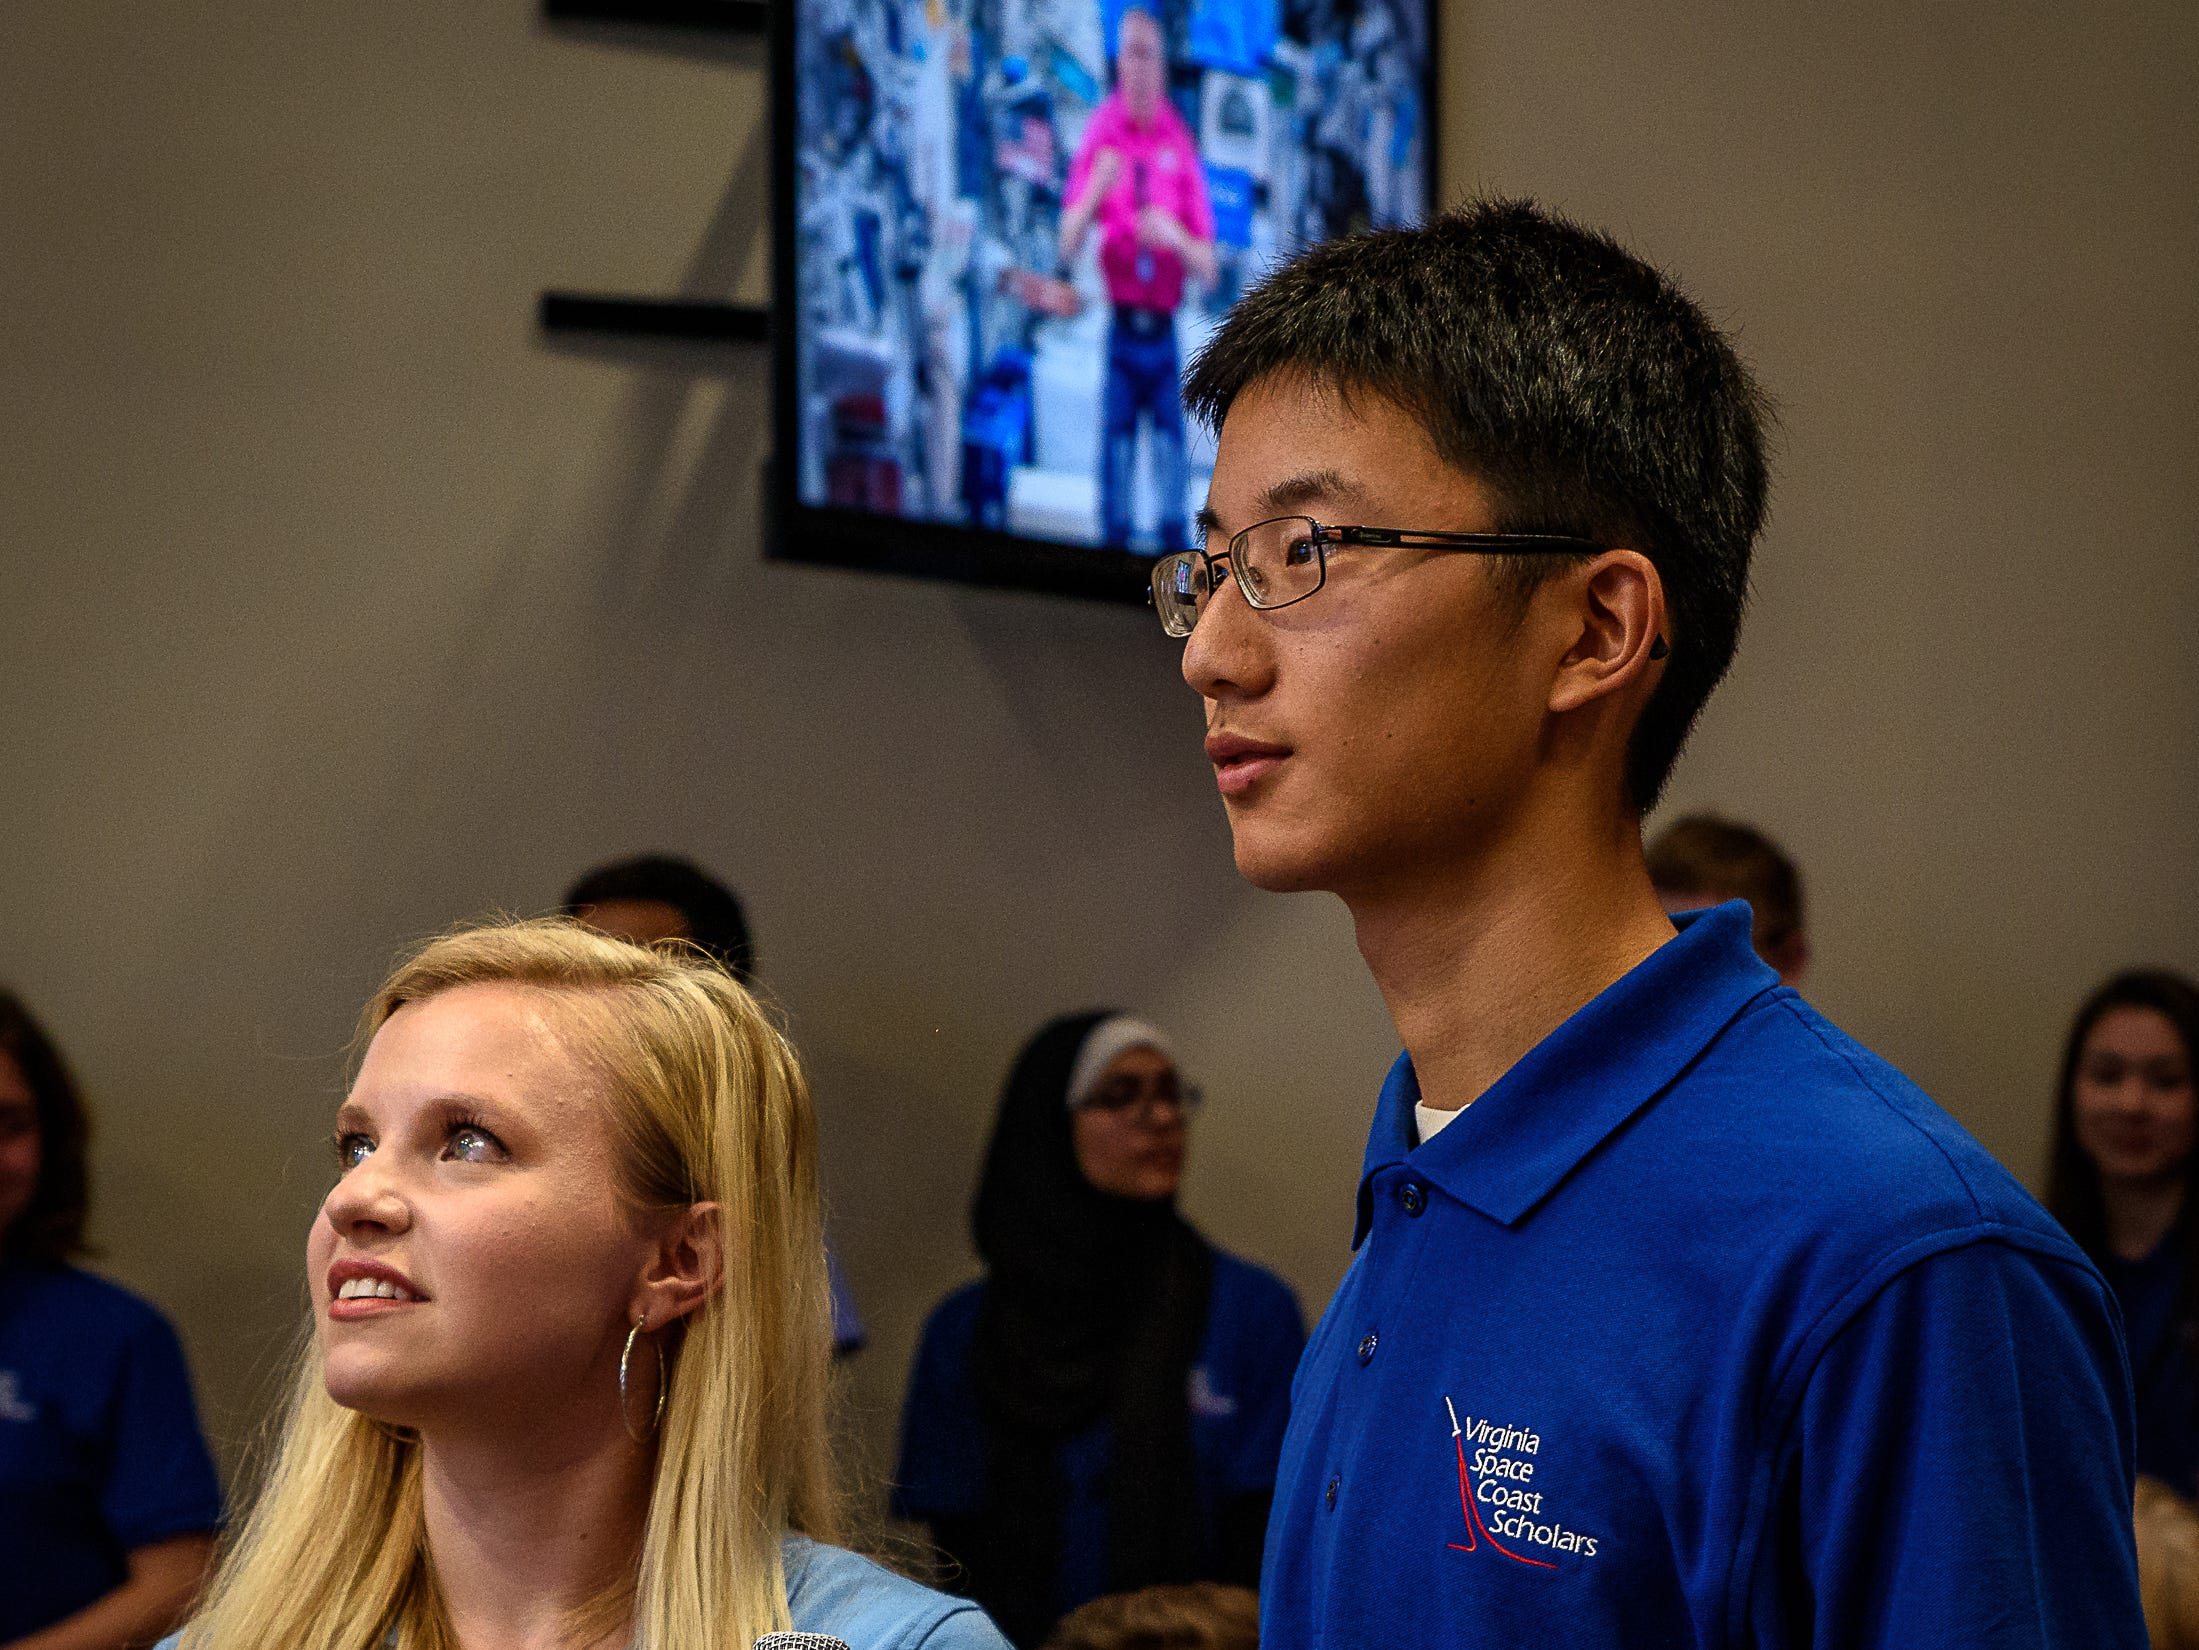 Wallops Facilitator Victoria Danna, (left) and a student from Virginia Space Coast Scholars, talk to astronaut Andrew Feustal. Students at Wallops Flight Facility spoke to crews while aboard the International Space Station as part of NASA's Year of Education on Station program on Aug. 2, 2018.